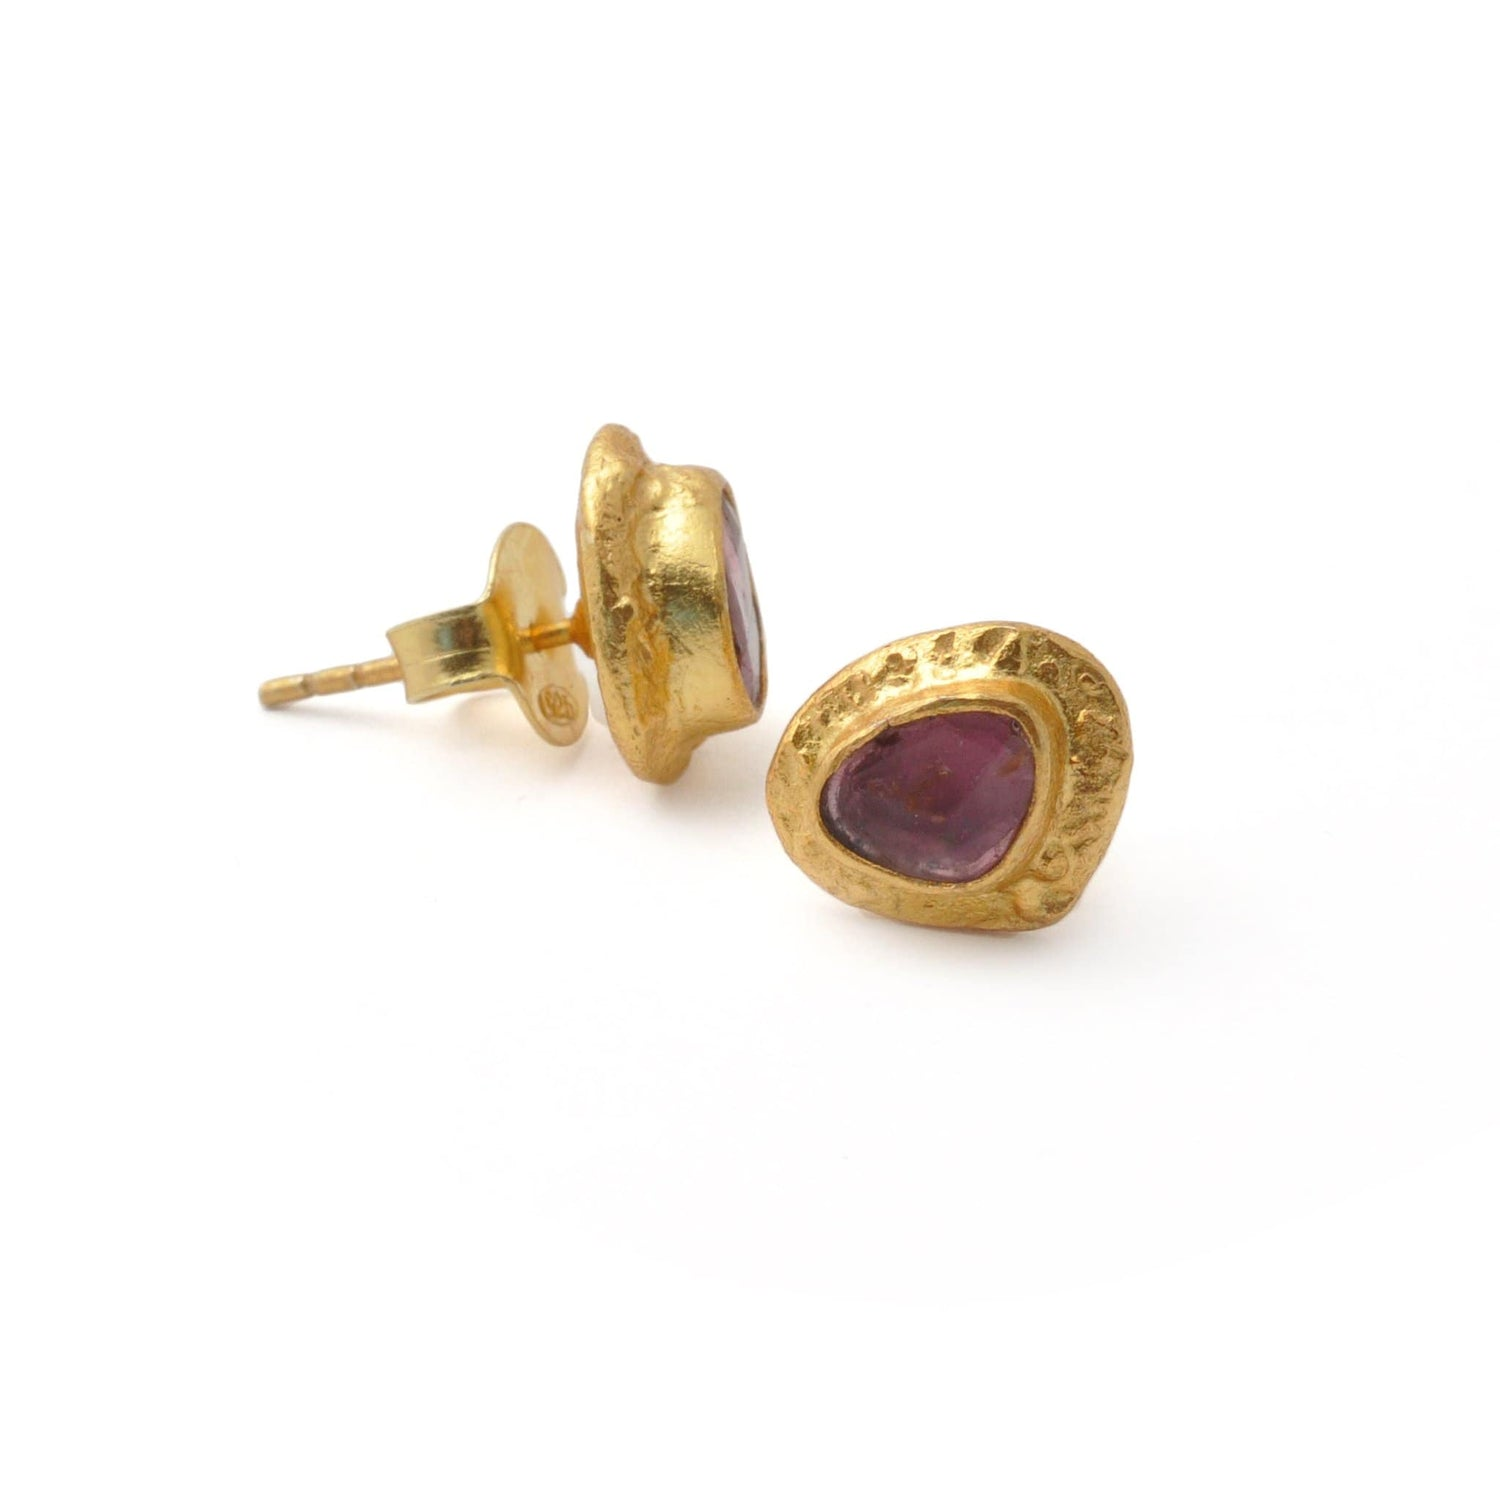 Hammered Edge Tourmaline Stud Earrings - Curated Los Angeles